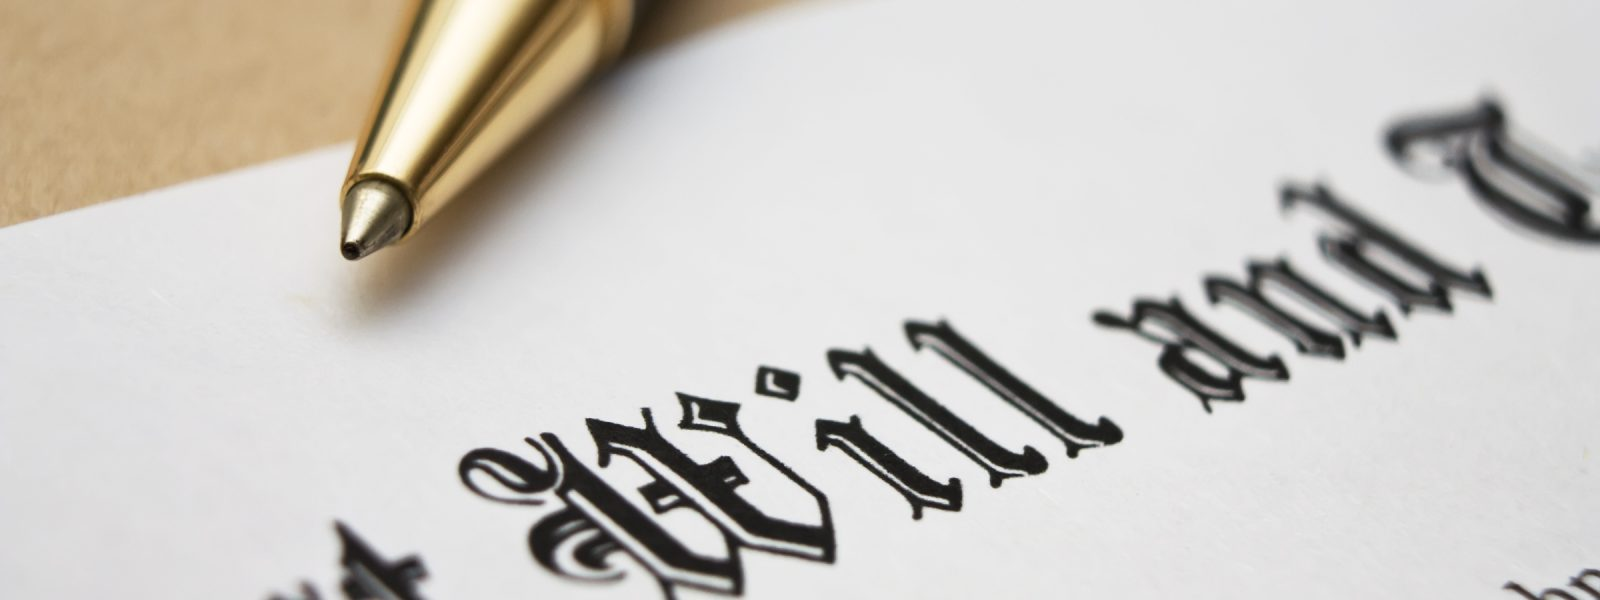 The Business of Estate Planning: Plan Ahead Before It's Too Late